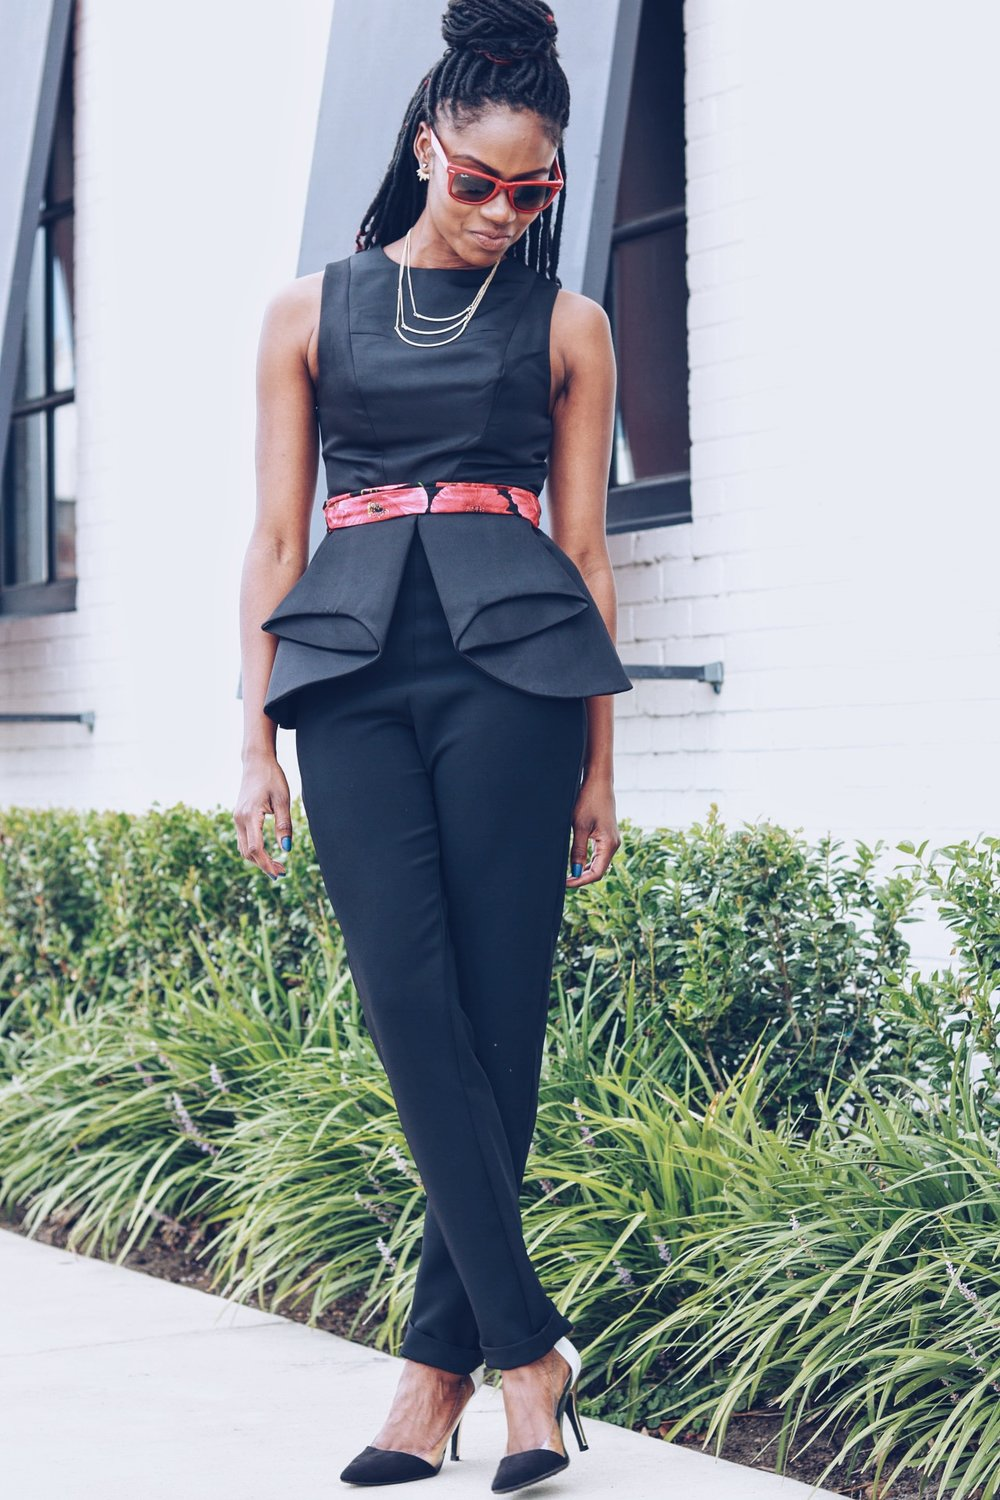 black jumpsuit by aqaq black and red belt black white gold pumps from heels to laces